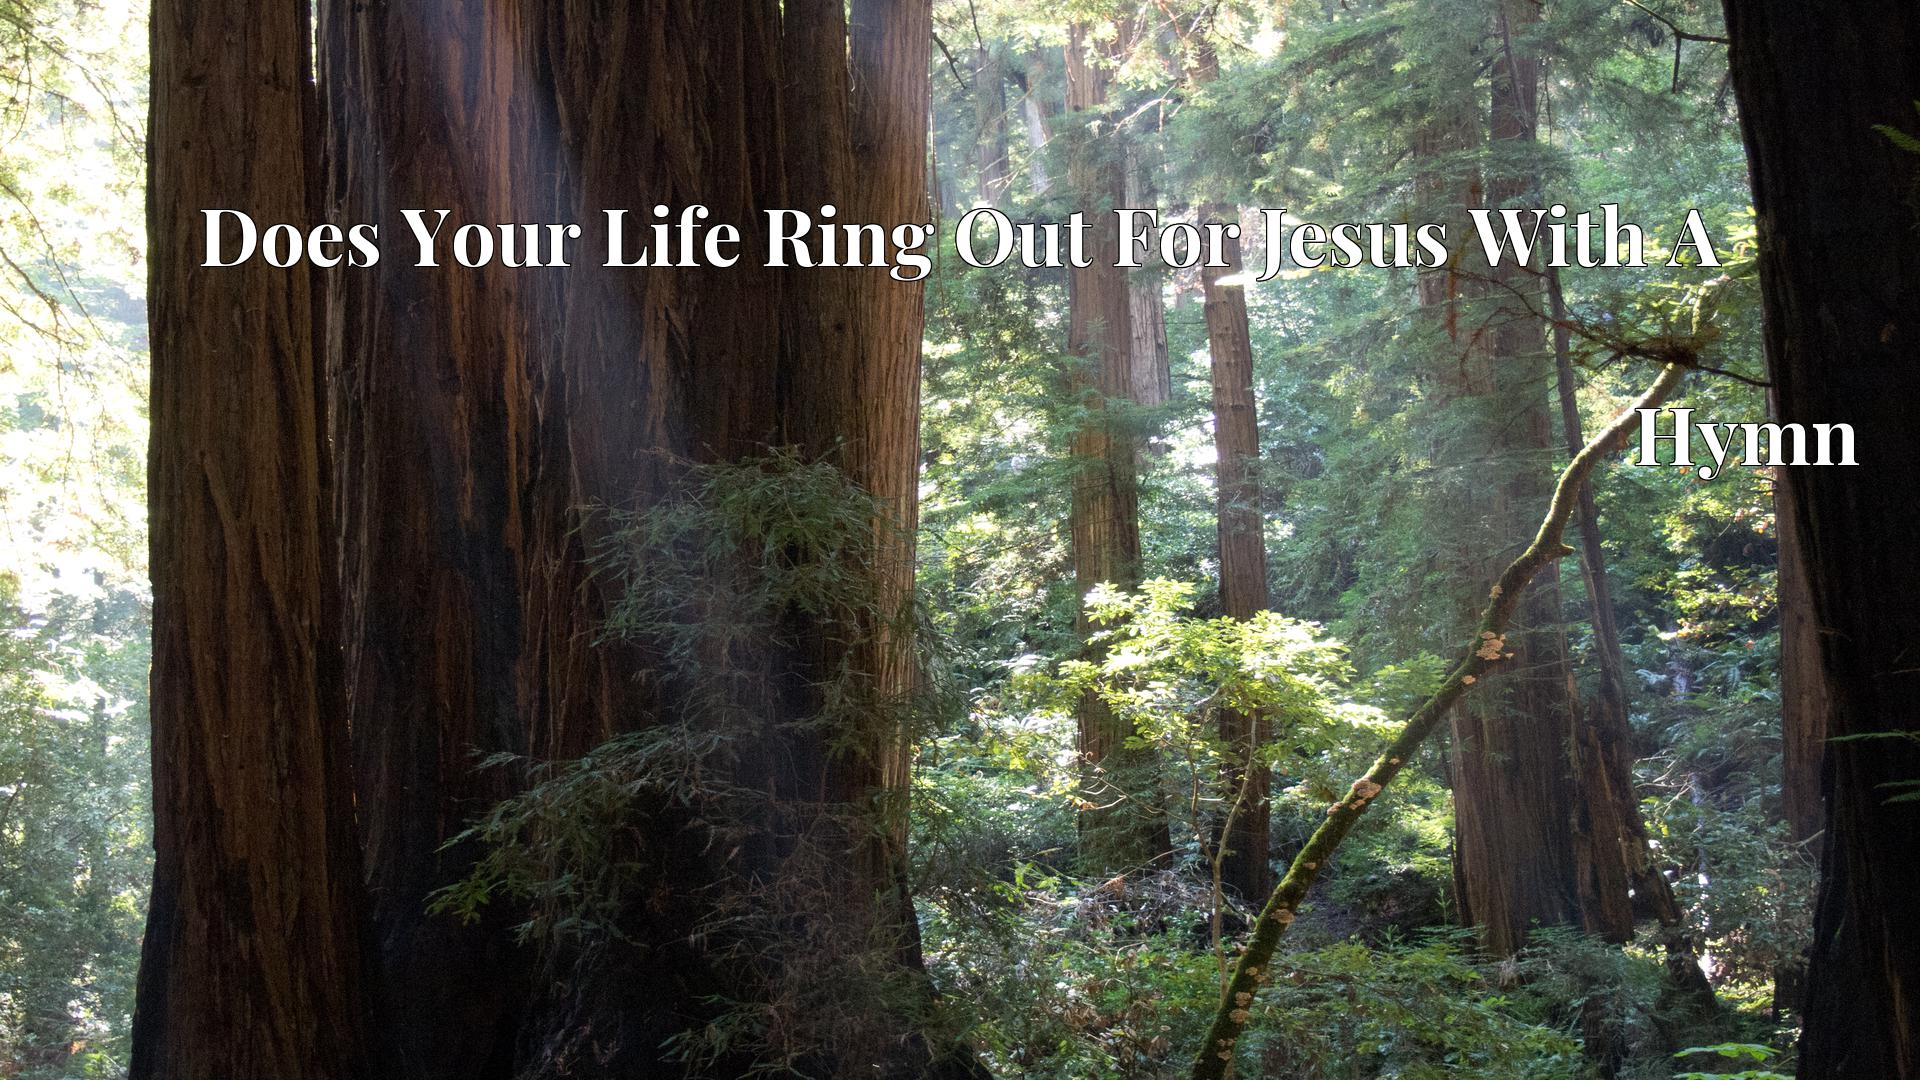 Does Your Life Ring Out For Jesus With A - Hymn